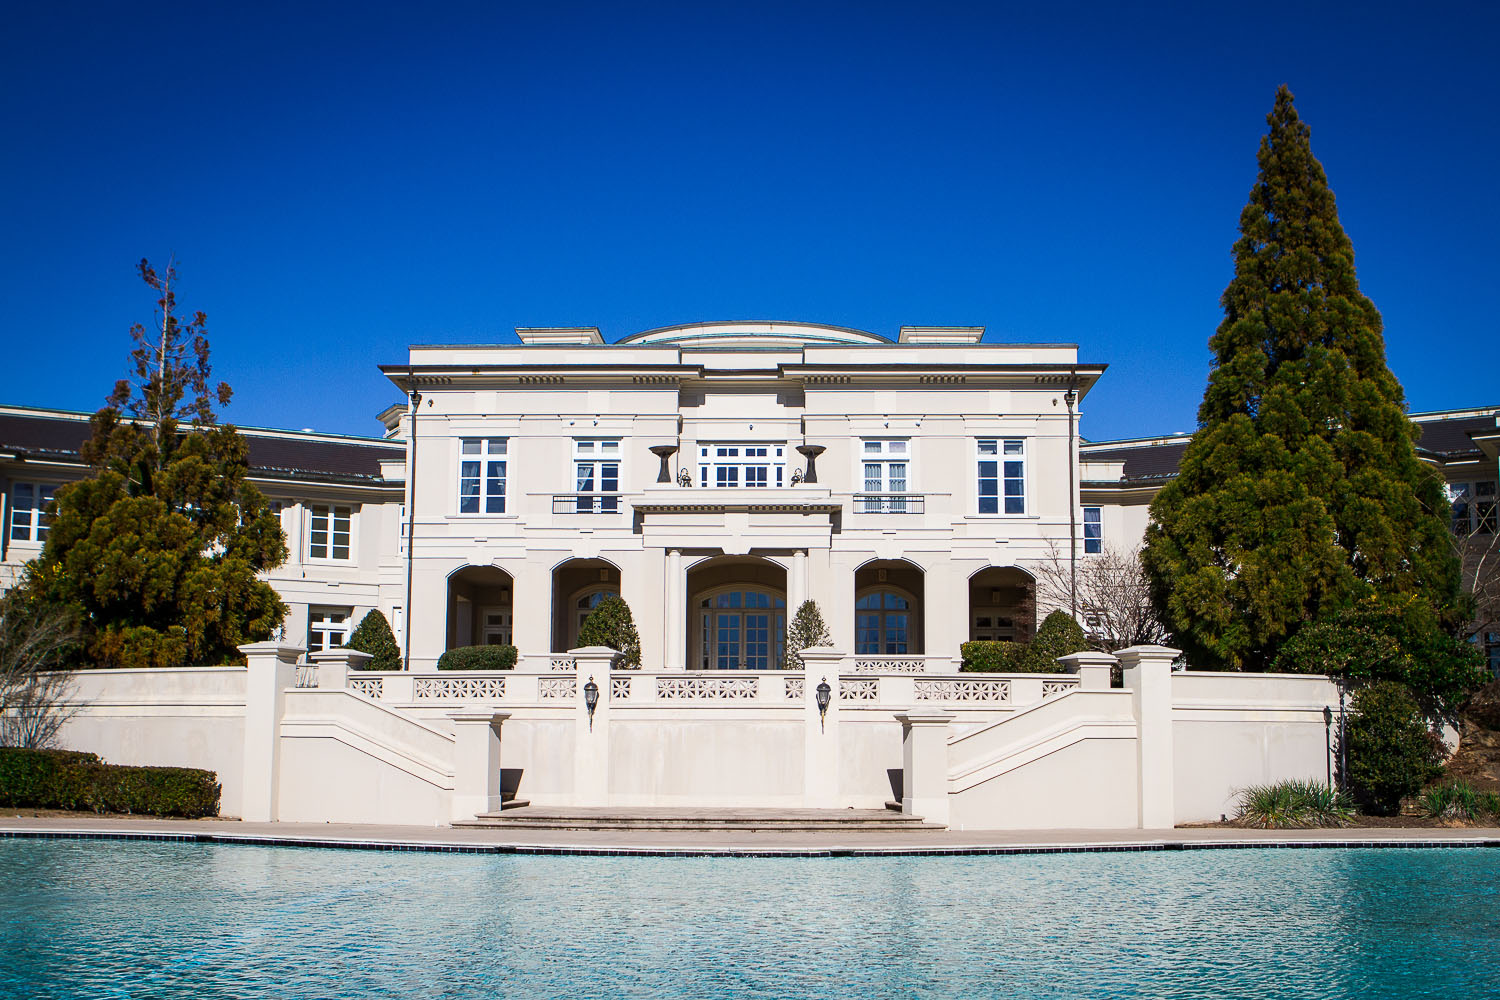 Photos: Rick Ross Cops Evander Holyfield's 109-Room Mansion And Will Use As Charity